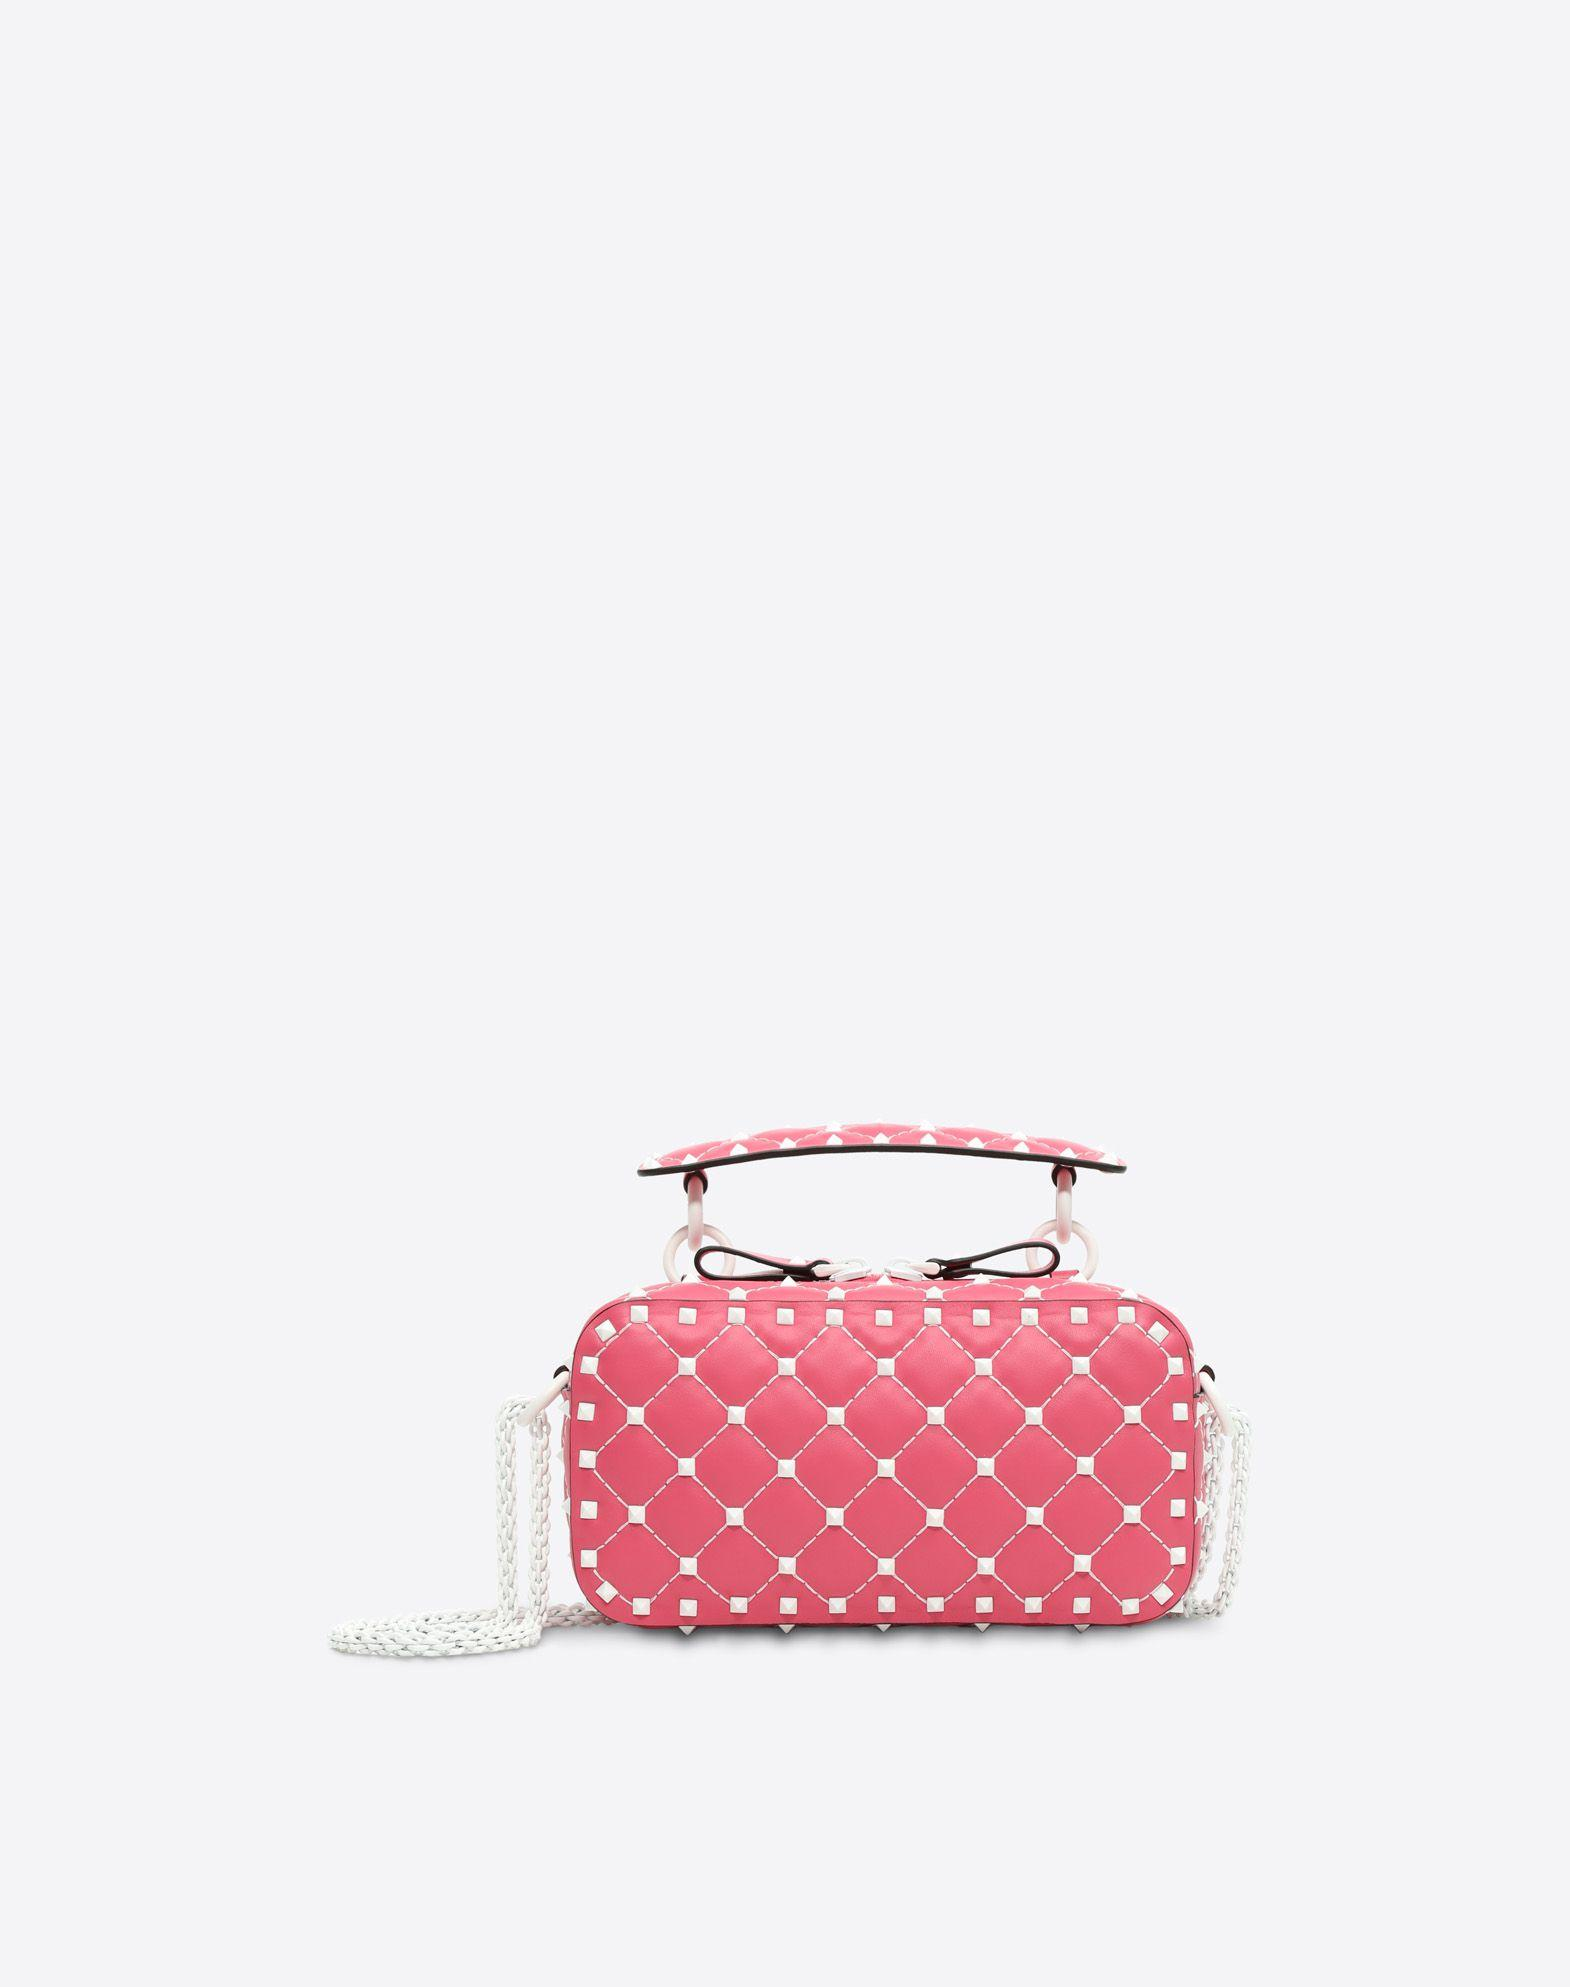 Valentino Garavani Rockstud Spike Quilted-leather Cross-body Bag In Bright Pink